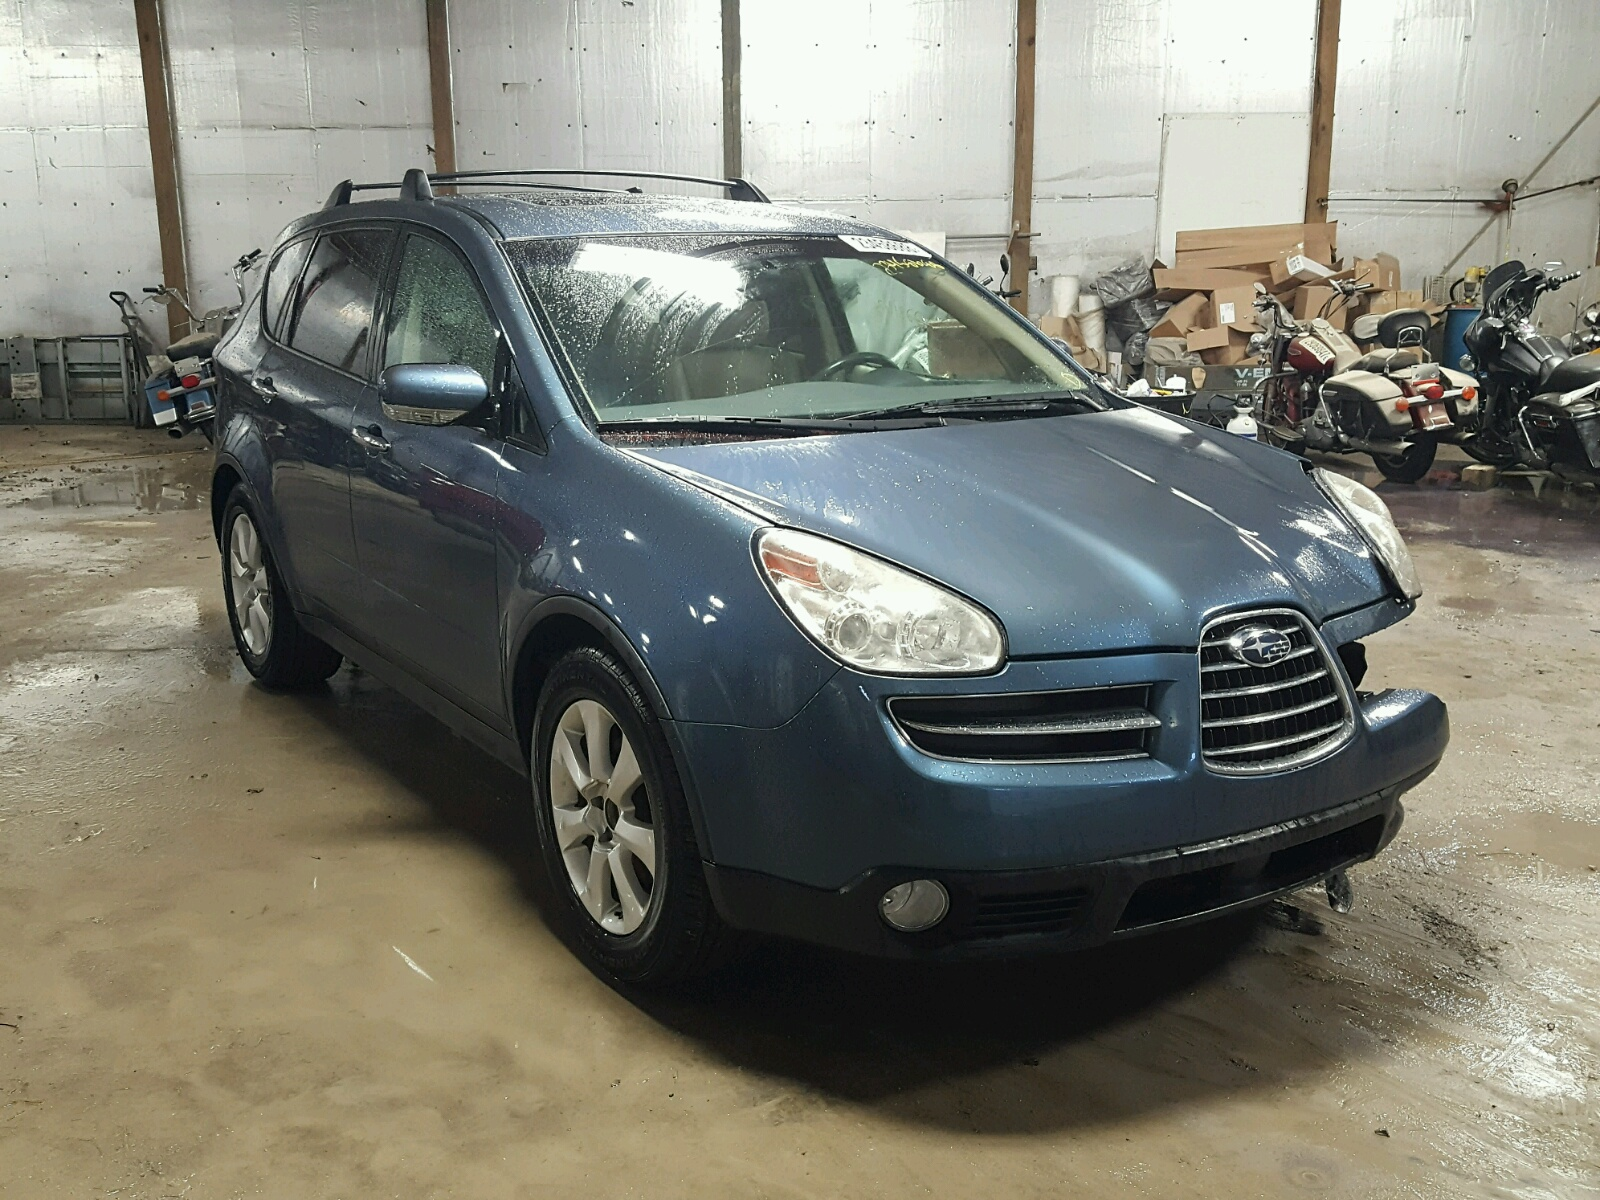 Auto Auction Ended on VIN 4S4WX86C 2006 SUBARU B9 TRIBECA